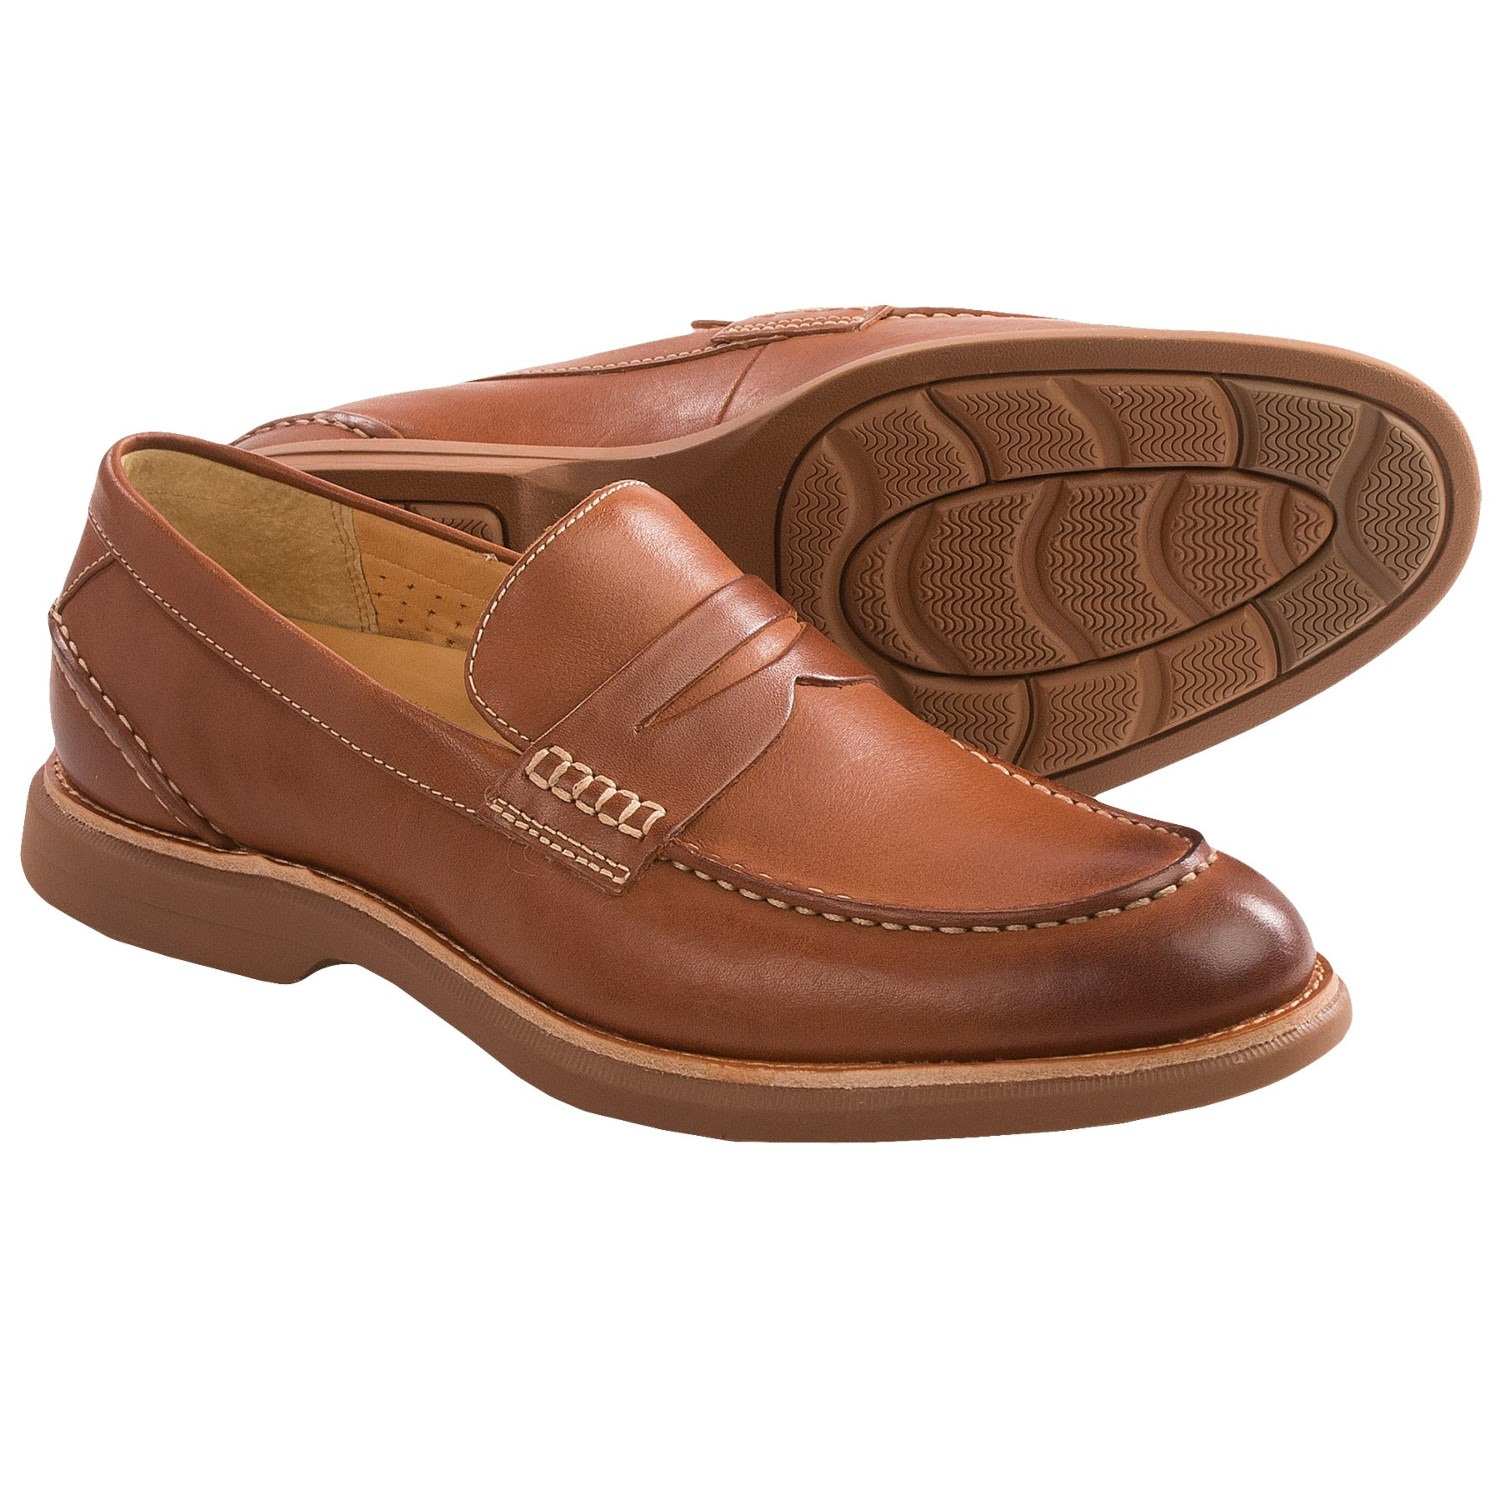 Sperry Gold Cup Bellingham Penny Loafers (For Men) in Tan